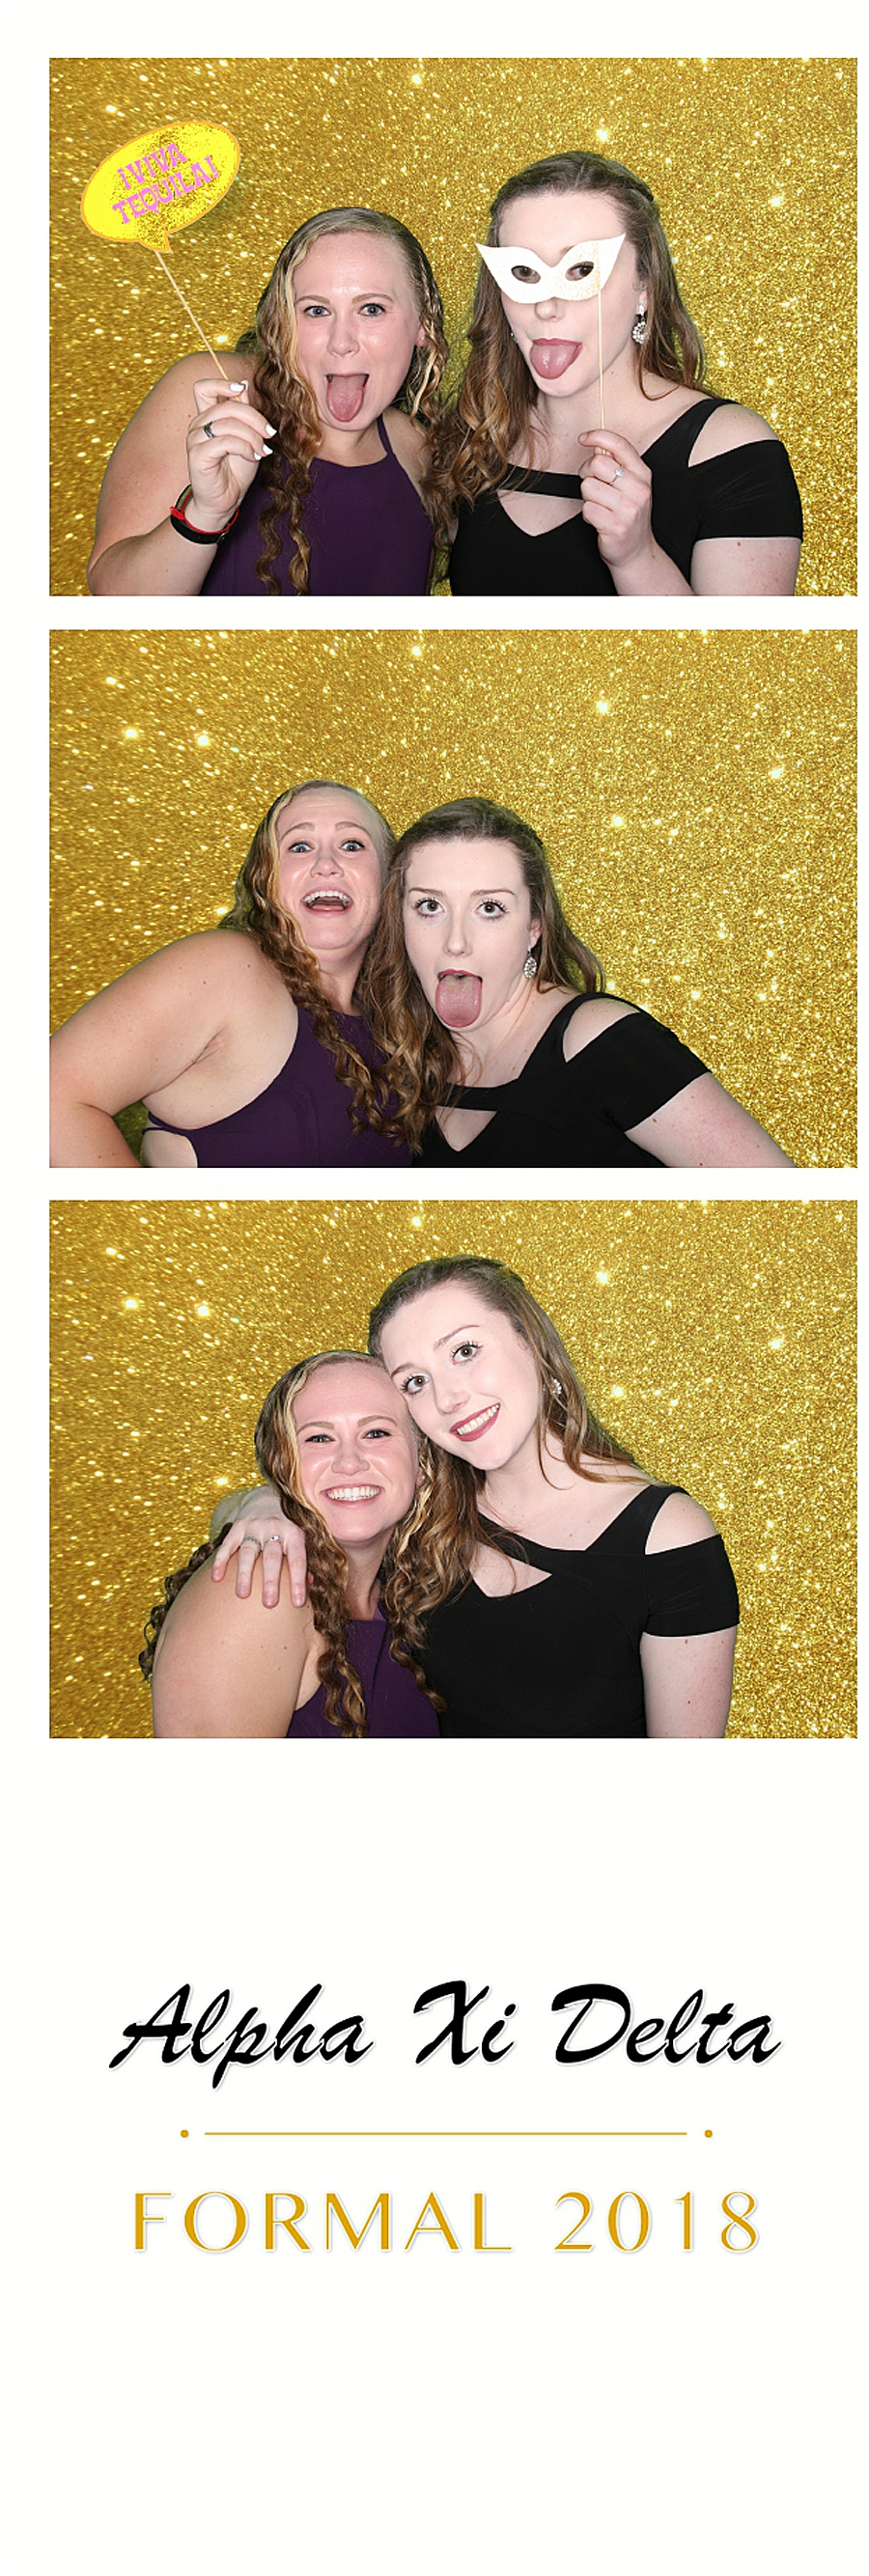 Knoxville Photo Booth_1587.jpg